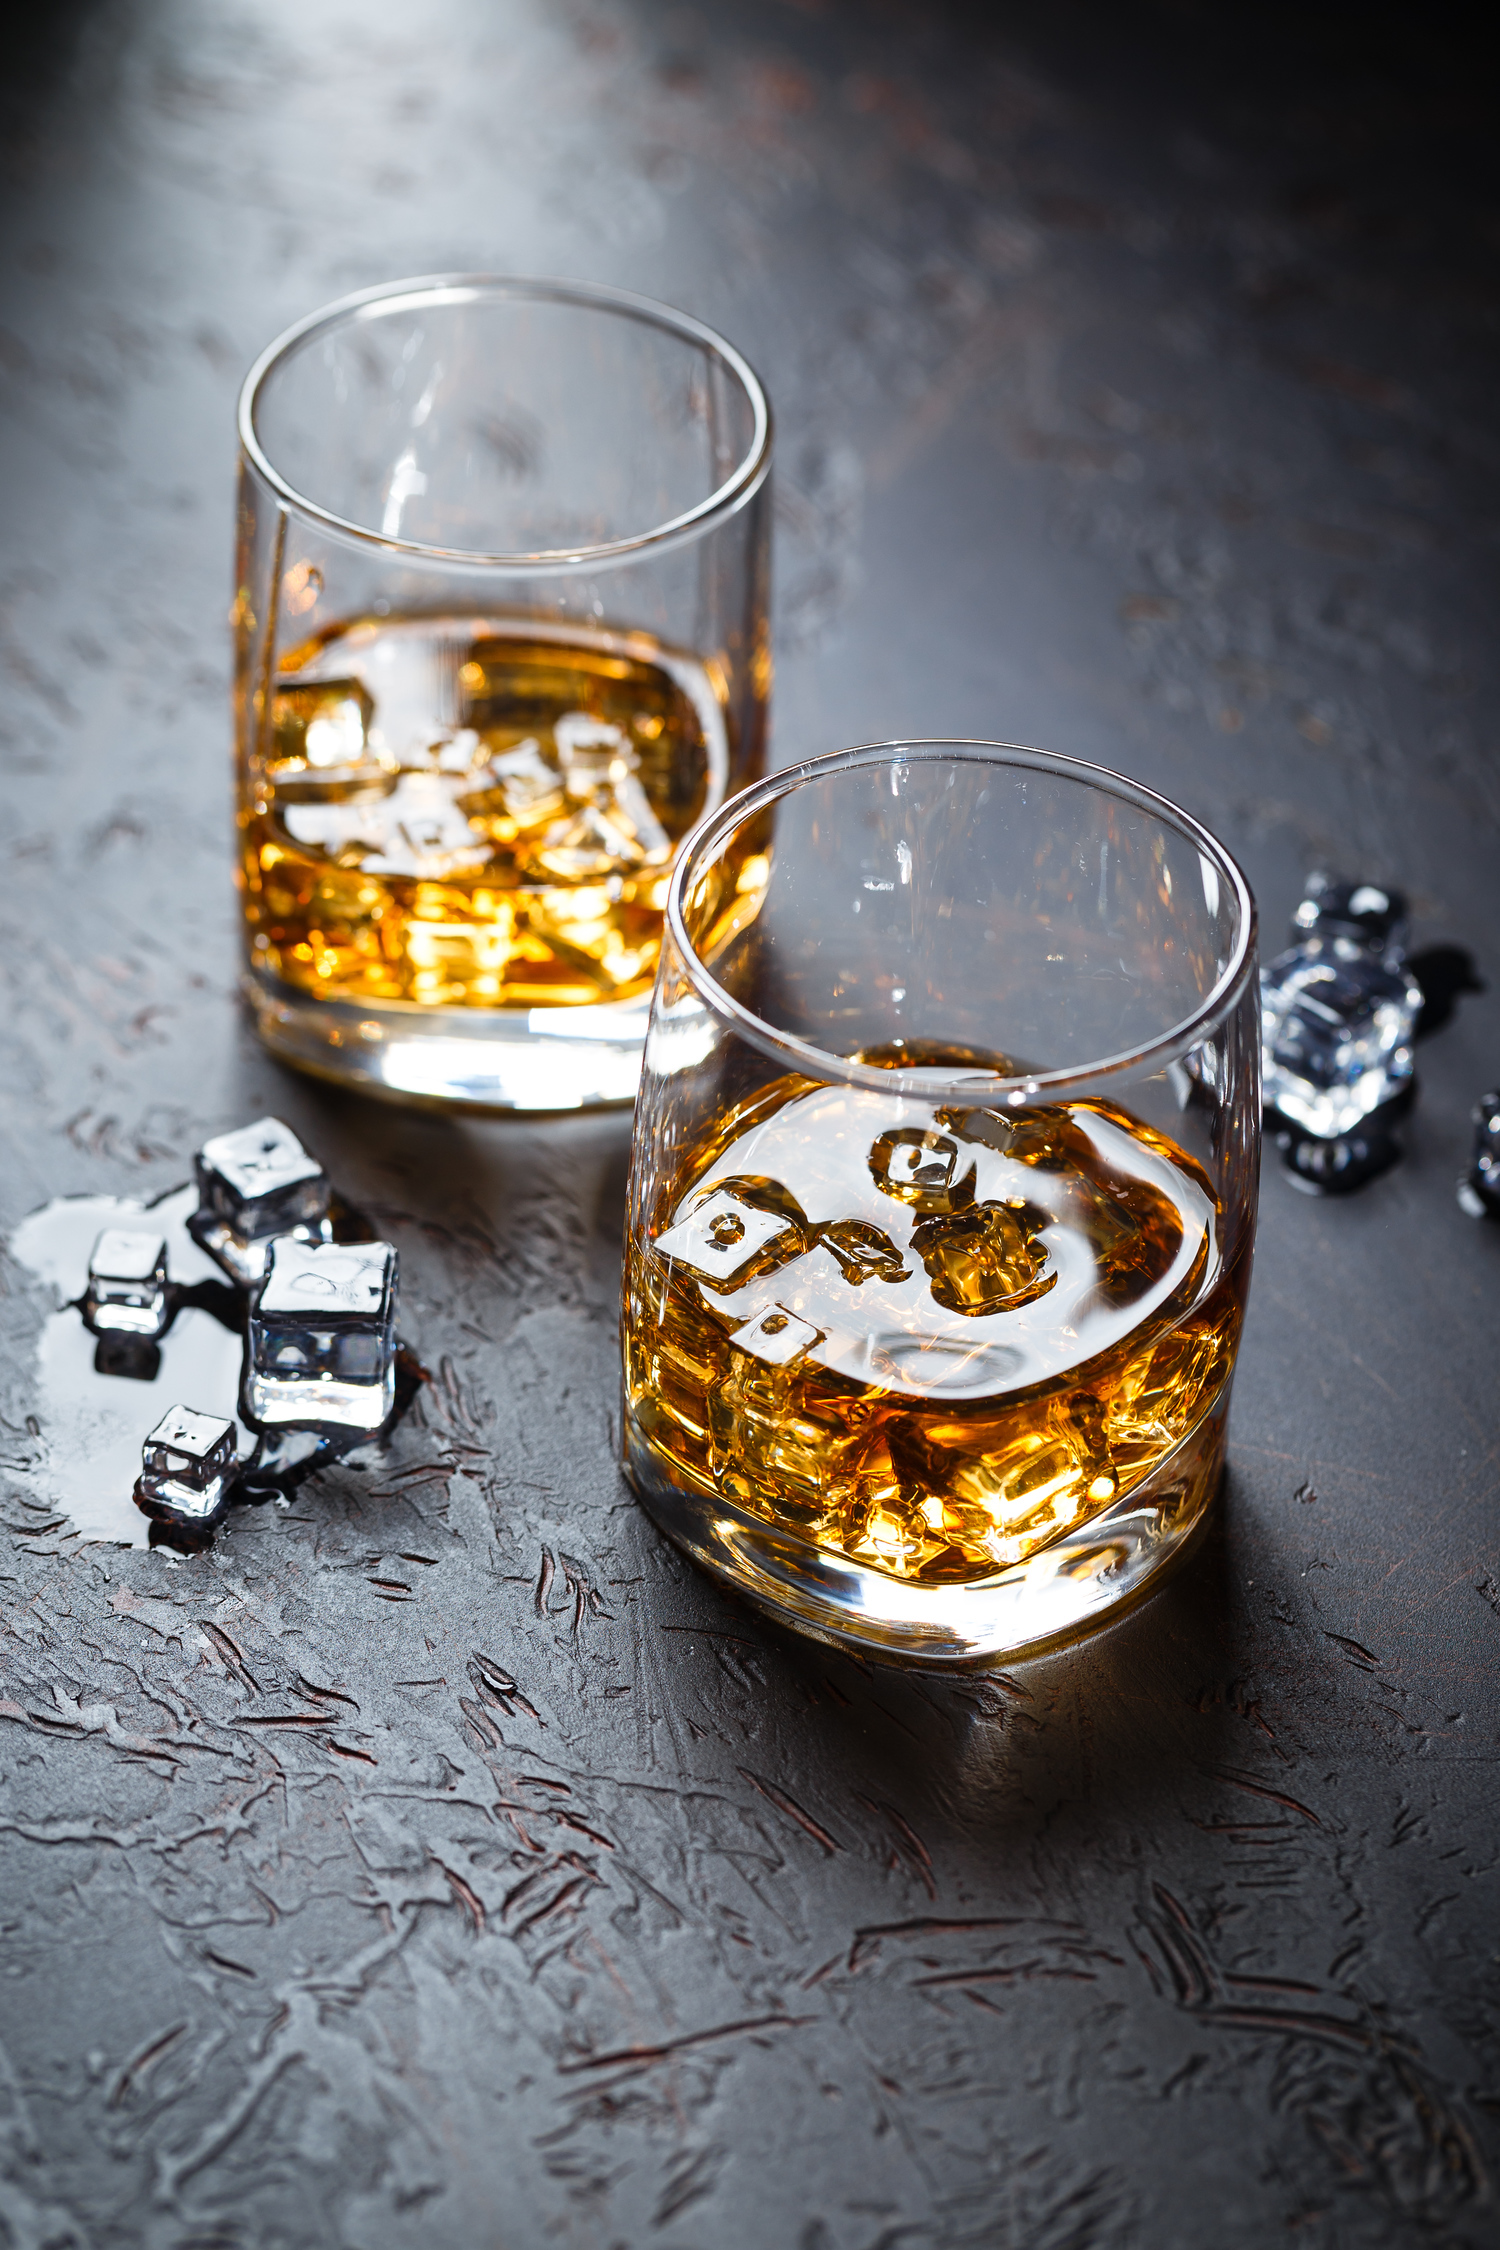 Whiskey on the rocks in two glasses on a dark background